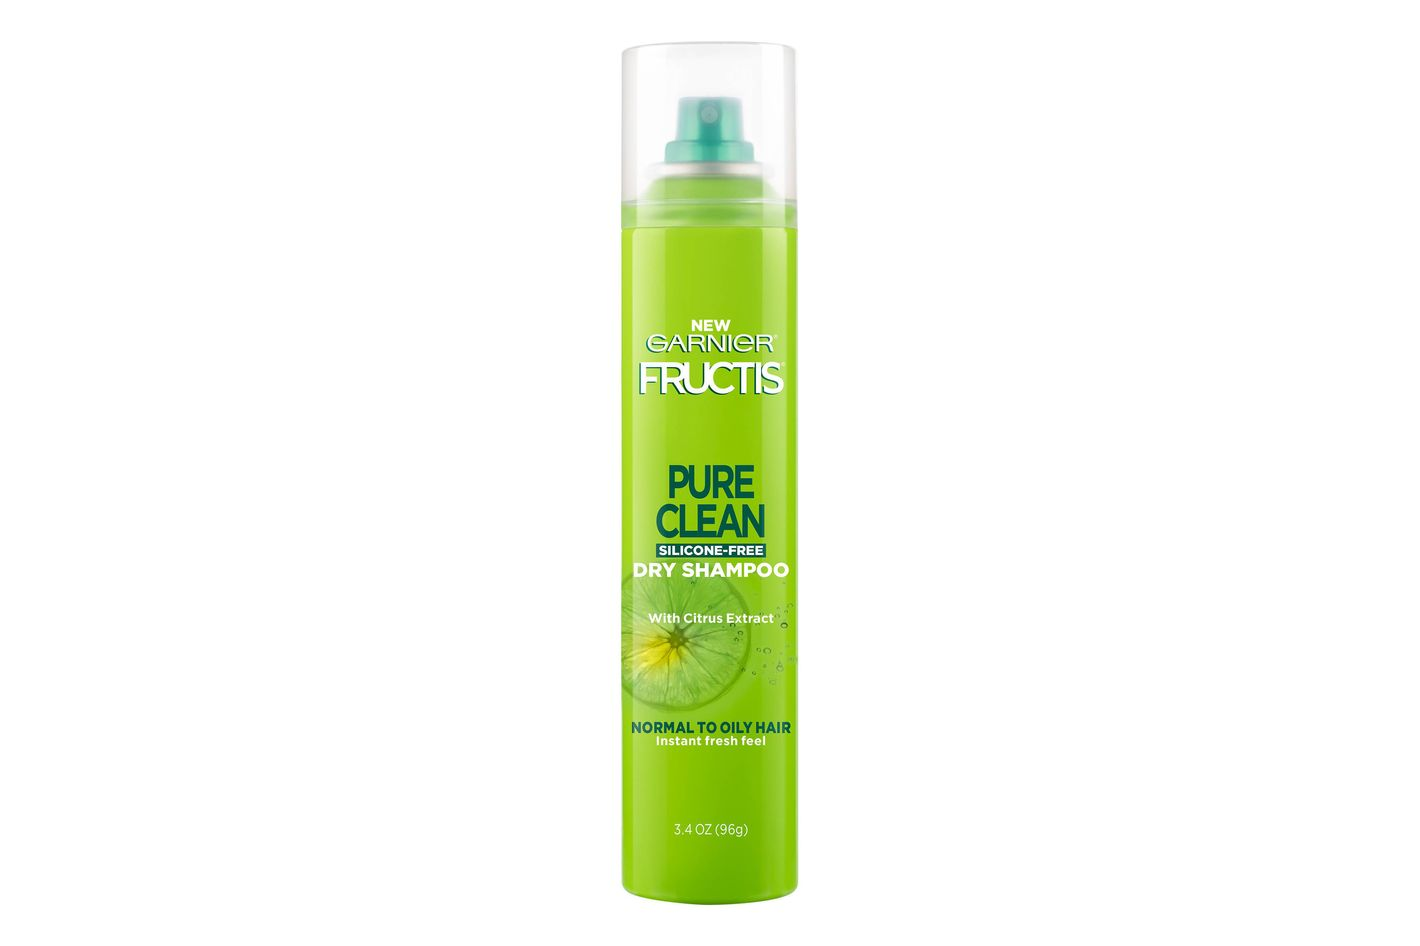 Garnier® Fructis® Pure Clean Dry Shampoo with Citrus Extract